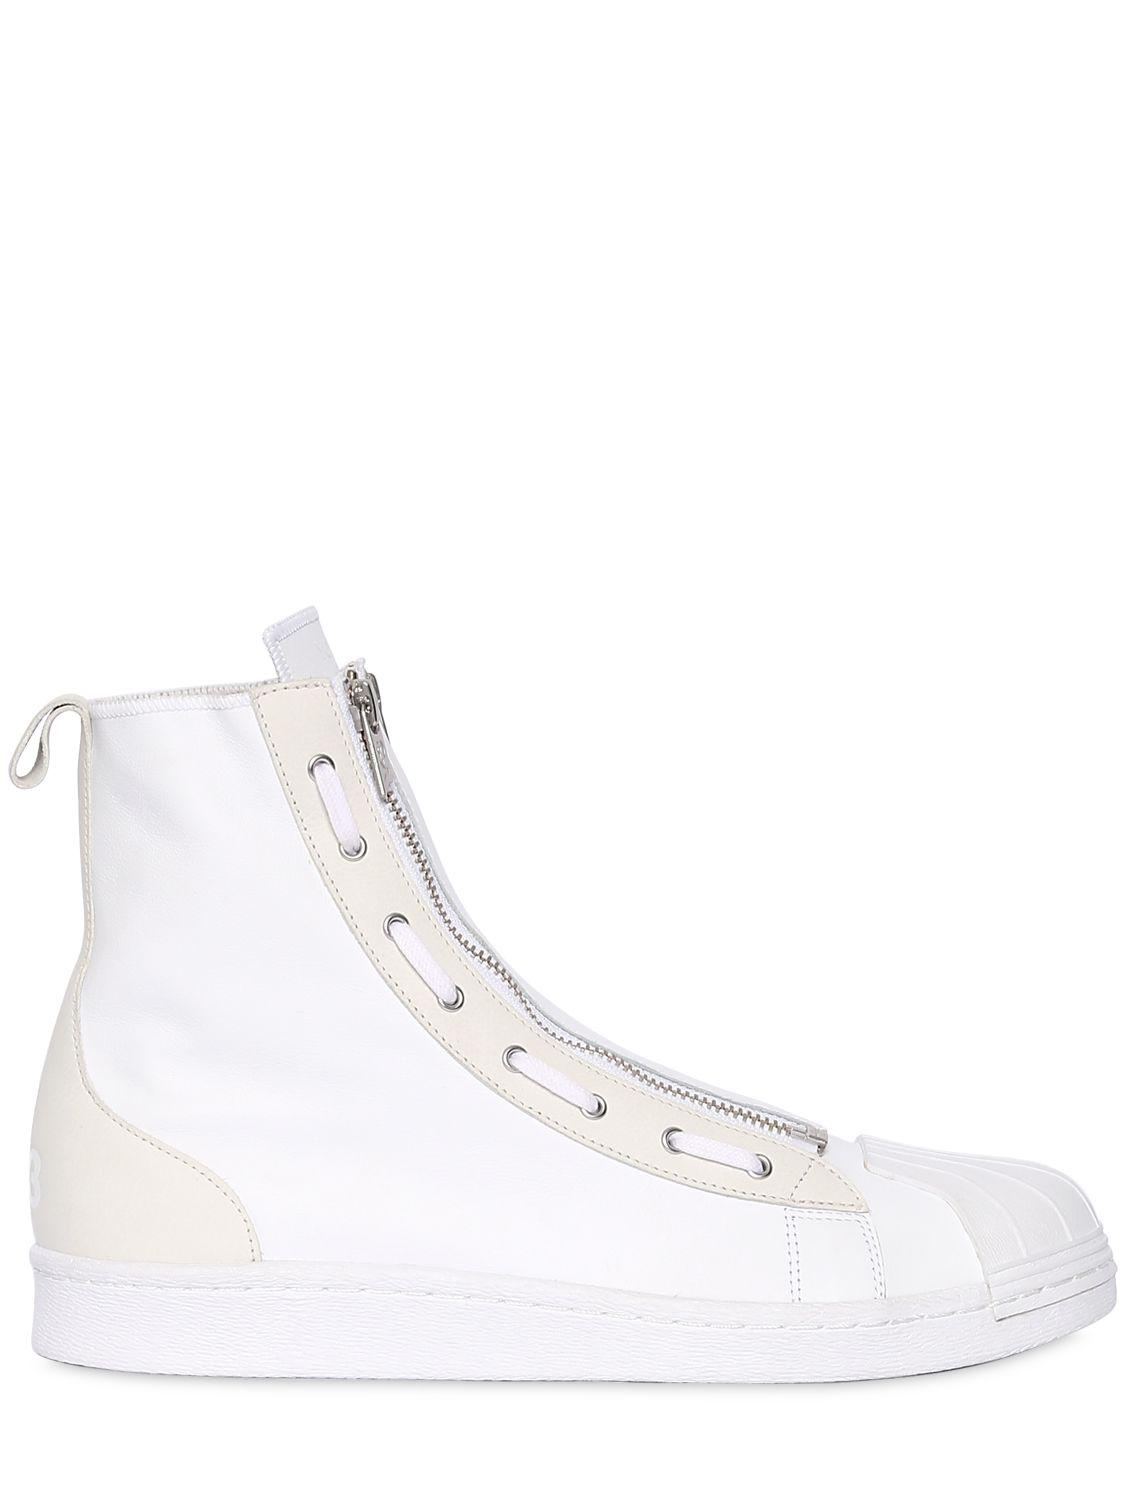 69445ad3bd1a Lyst - Y-3 Leather Super Zip High Top Sneakers in White for Men